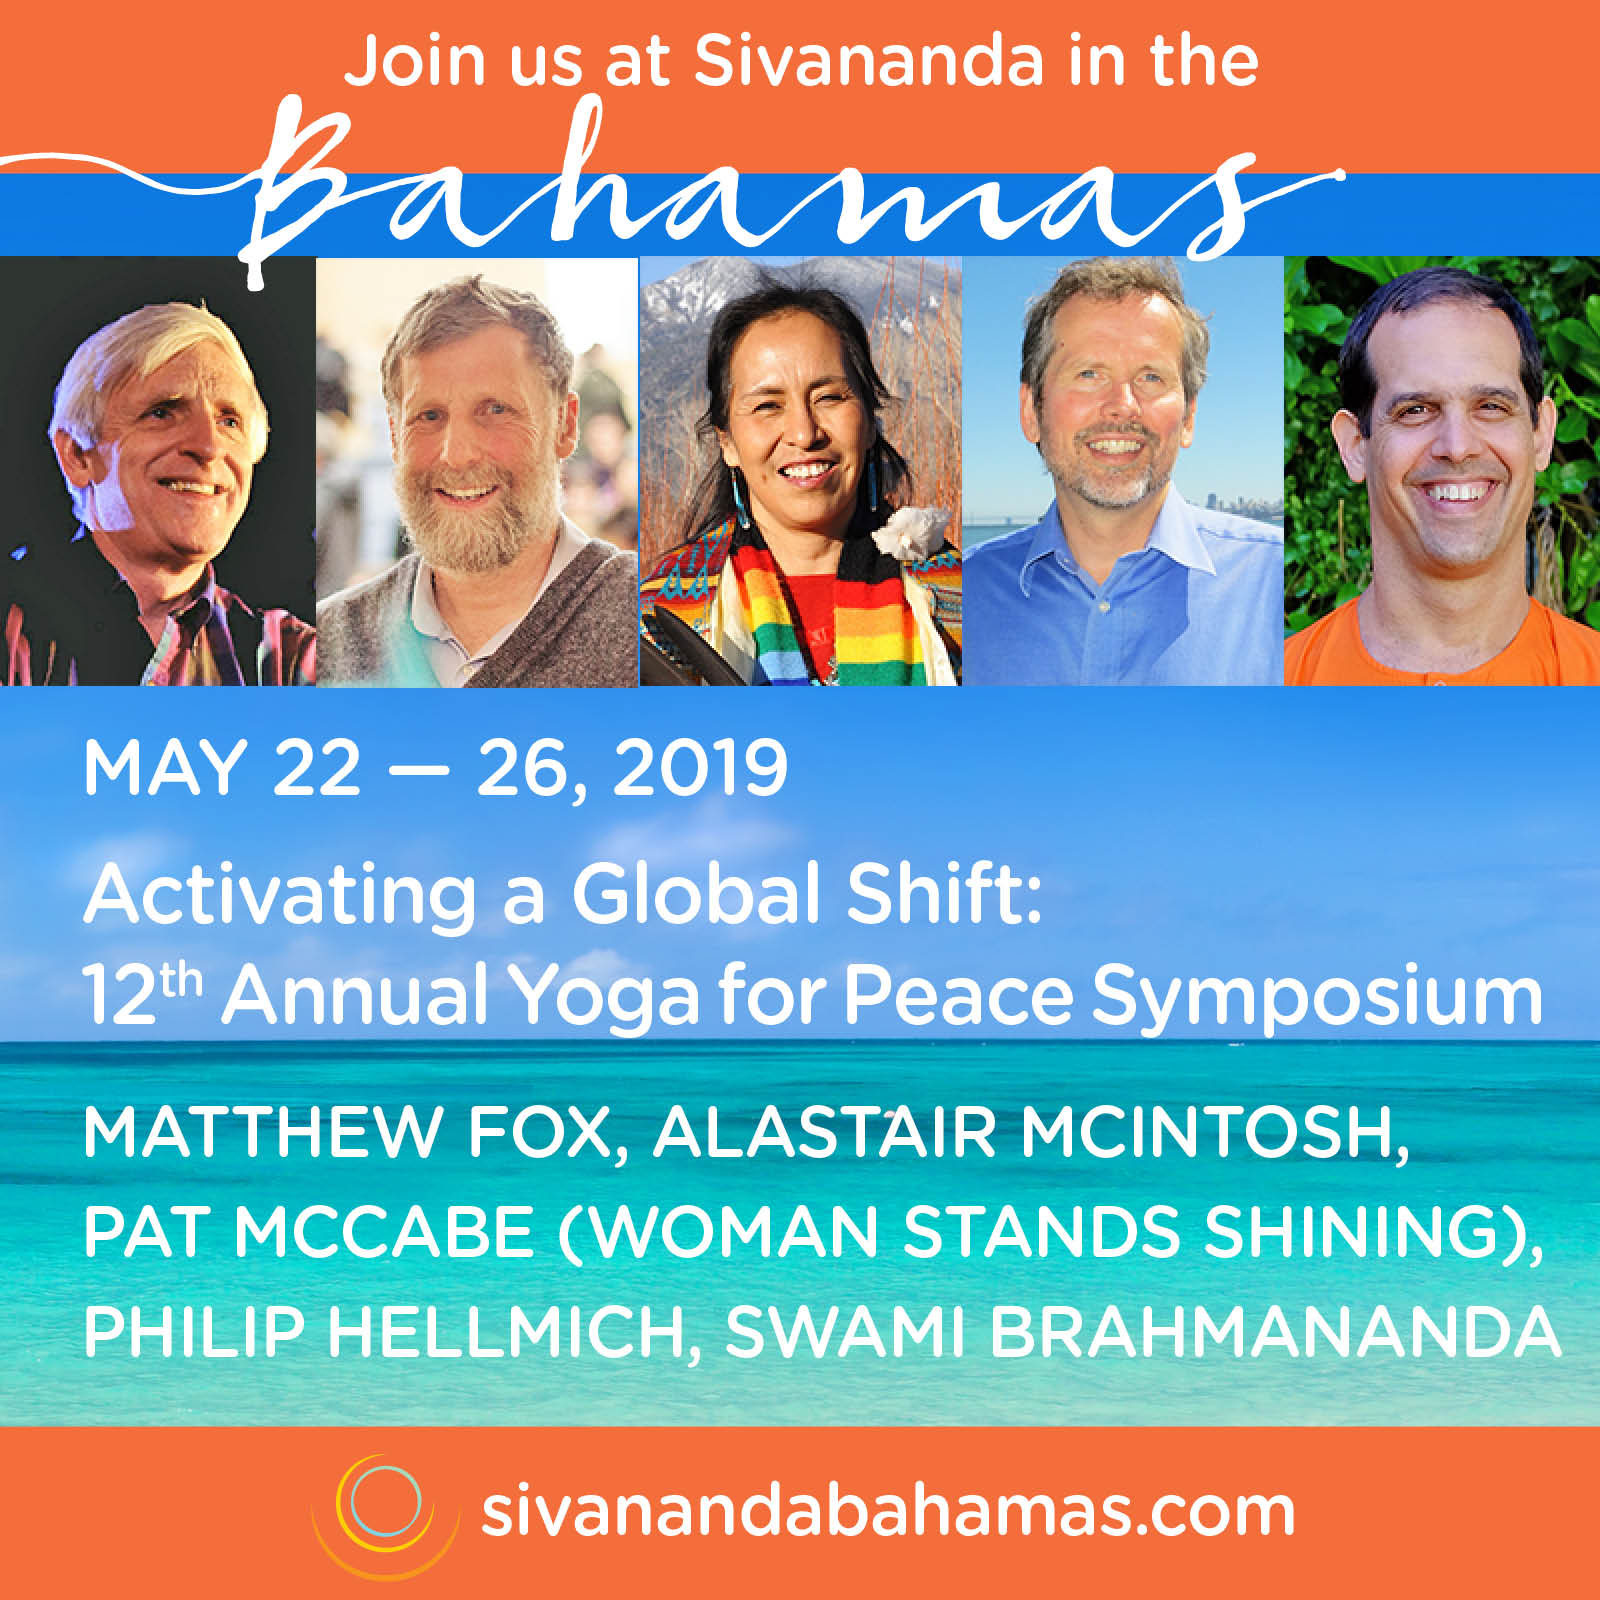 Yoga For Peace Symposium Activating A Global Shift Nassau Bahamas Welcome From Matthew Fox